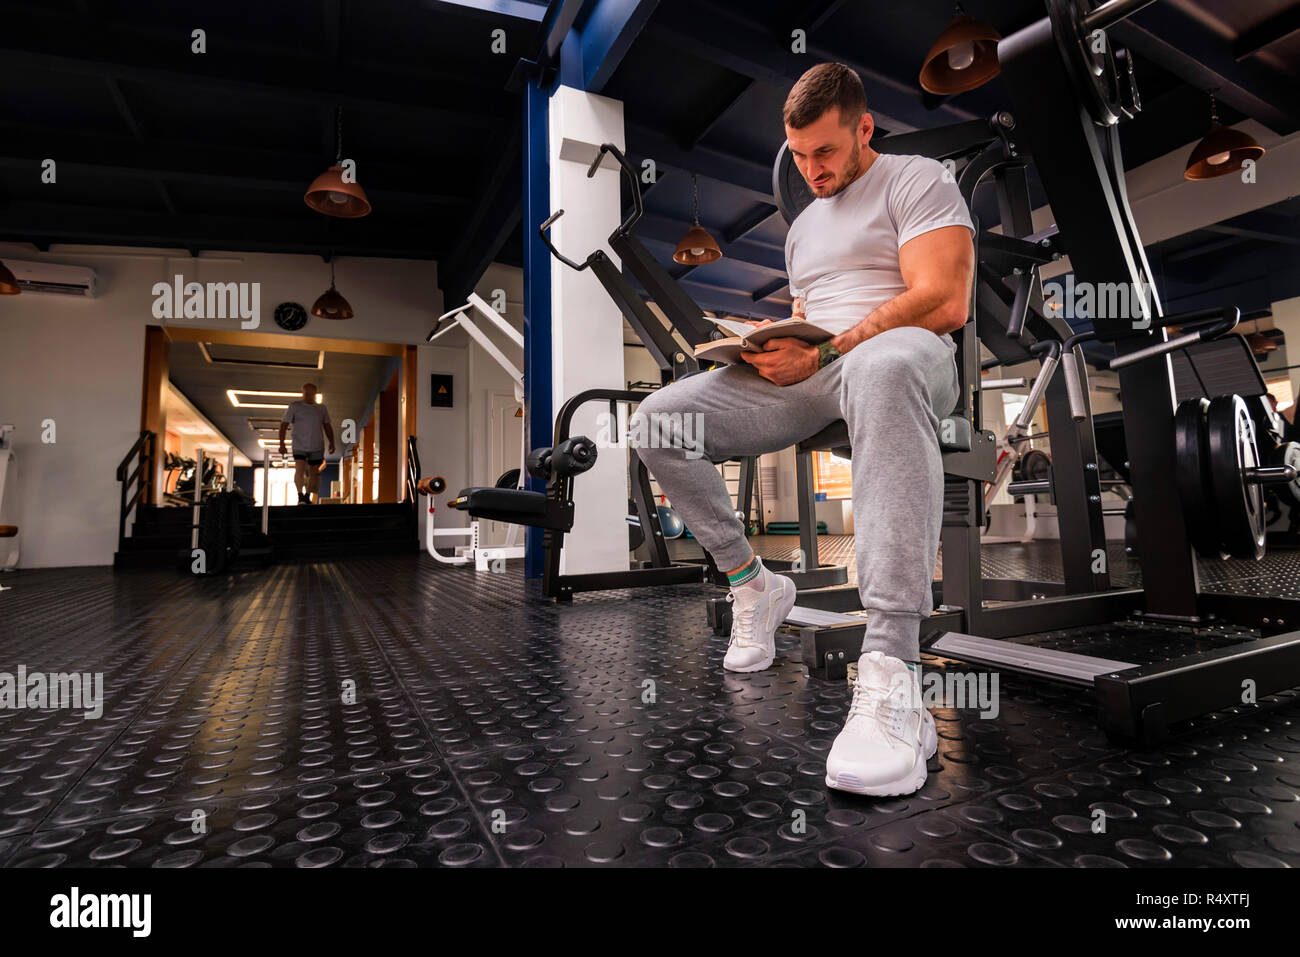 Fitness trainer writes workout plan close up in gym - Stock Image